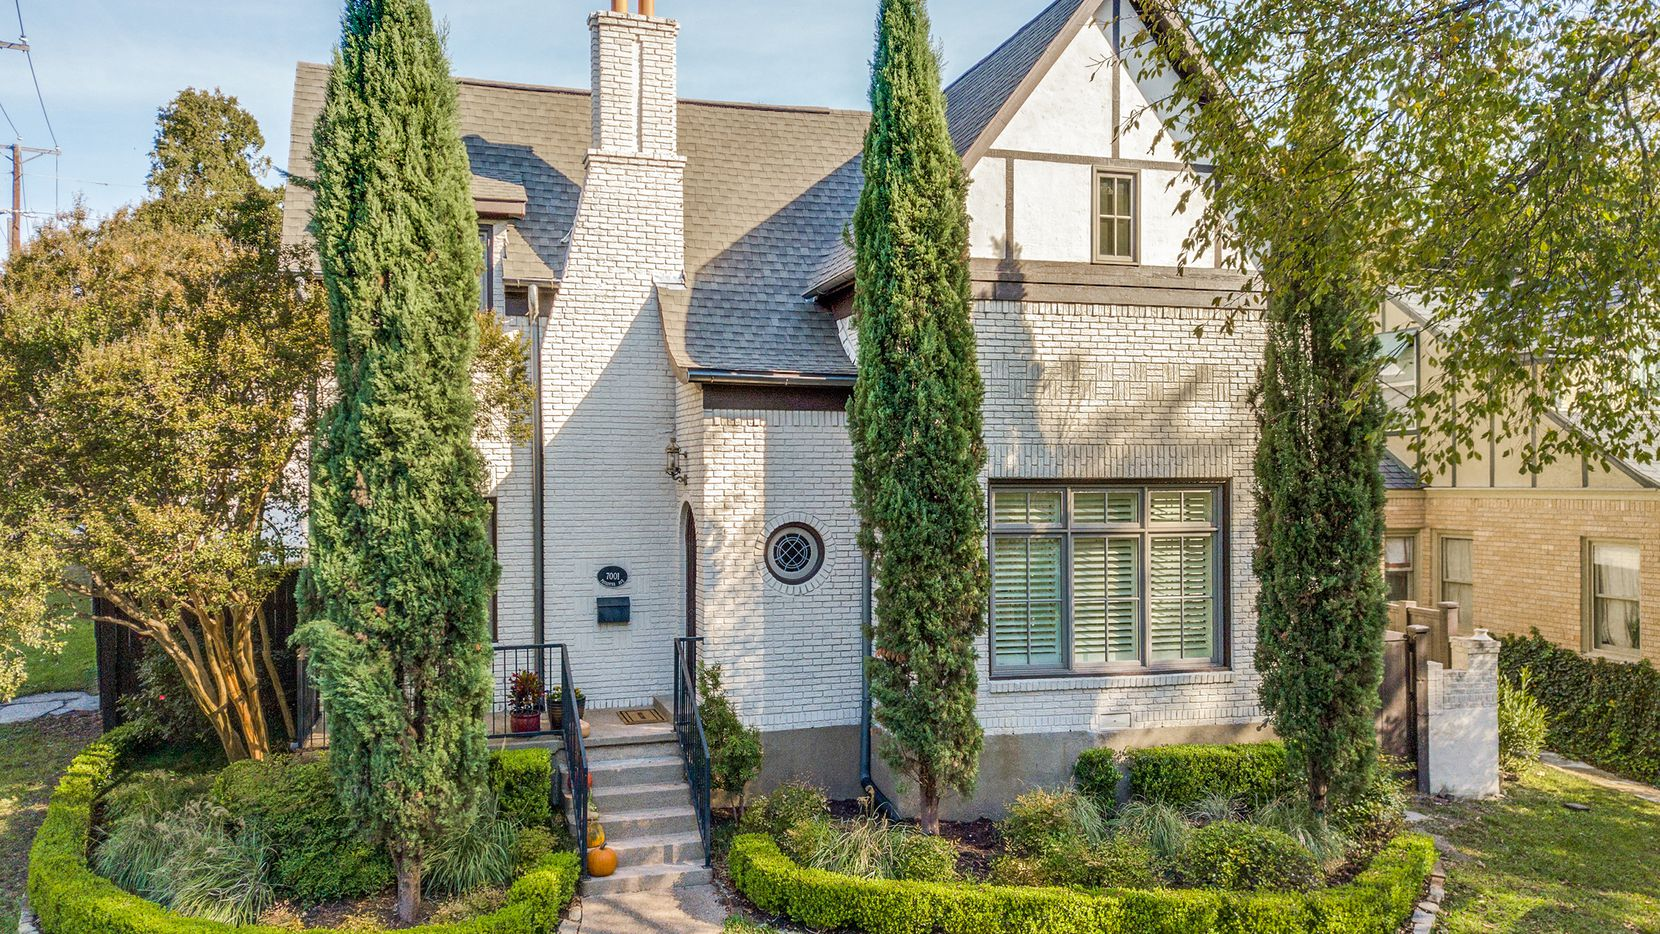 Situated on a hill in Lakewood, the 1930s Tudor-style residence at 7001 Pasadena Ave. has been updated and enlarged.